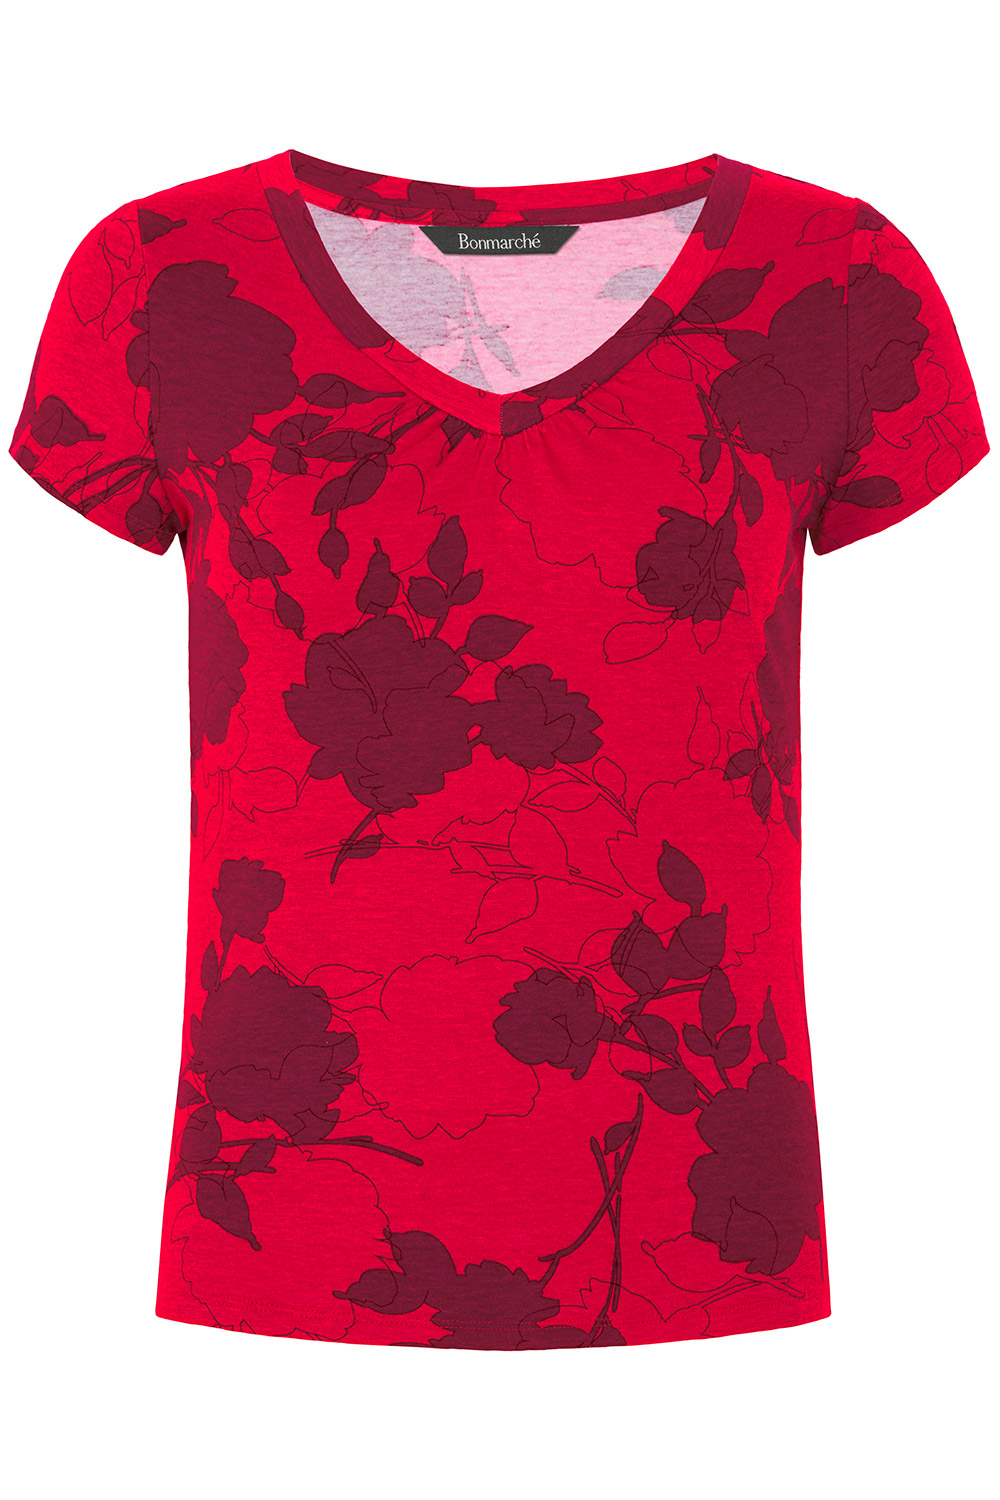 1000x1500 Silhouette Rose Print V Neck Top